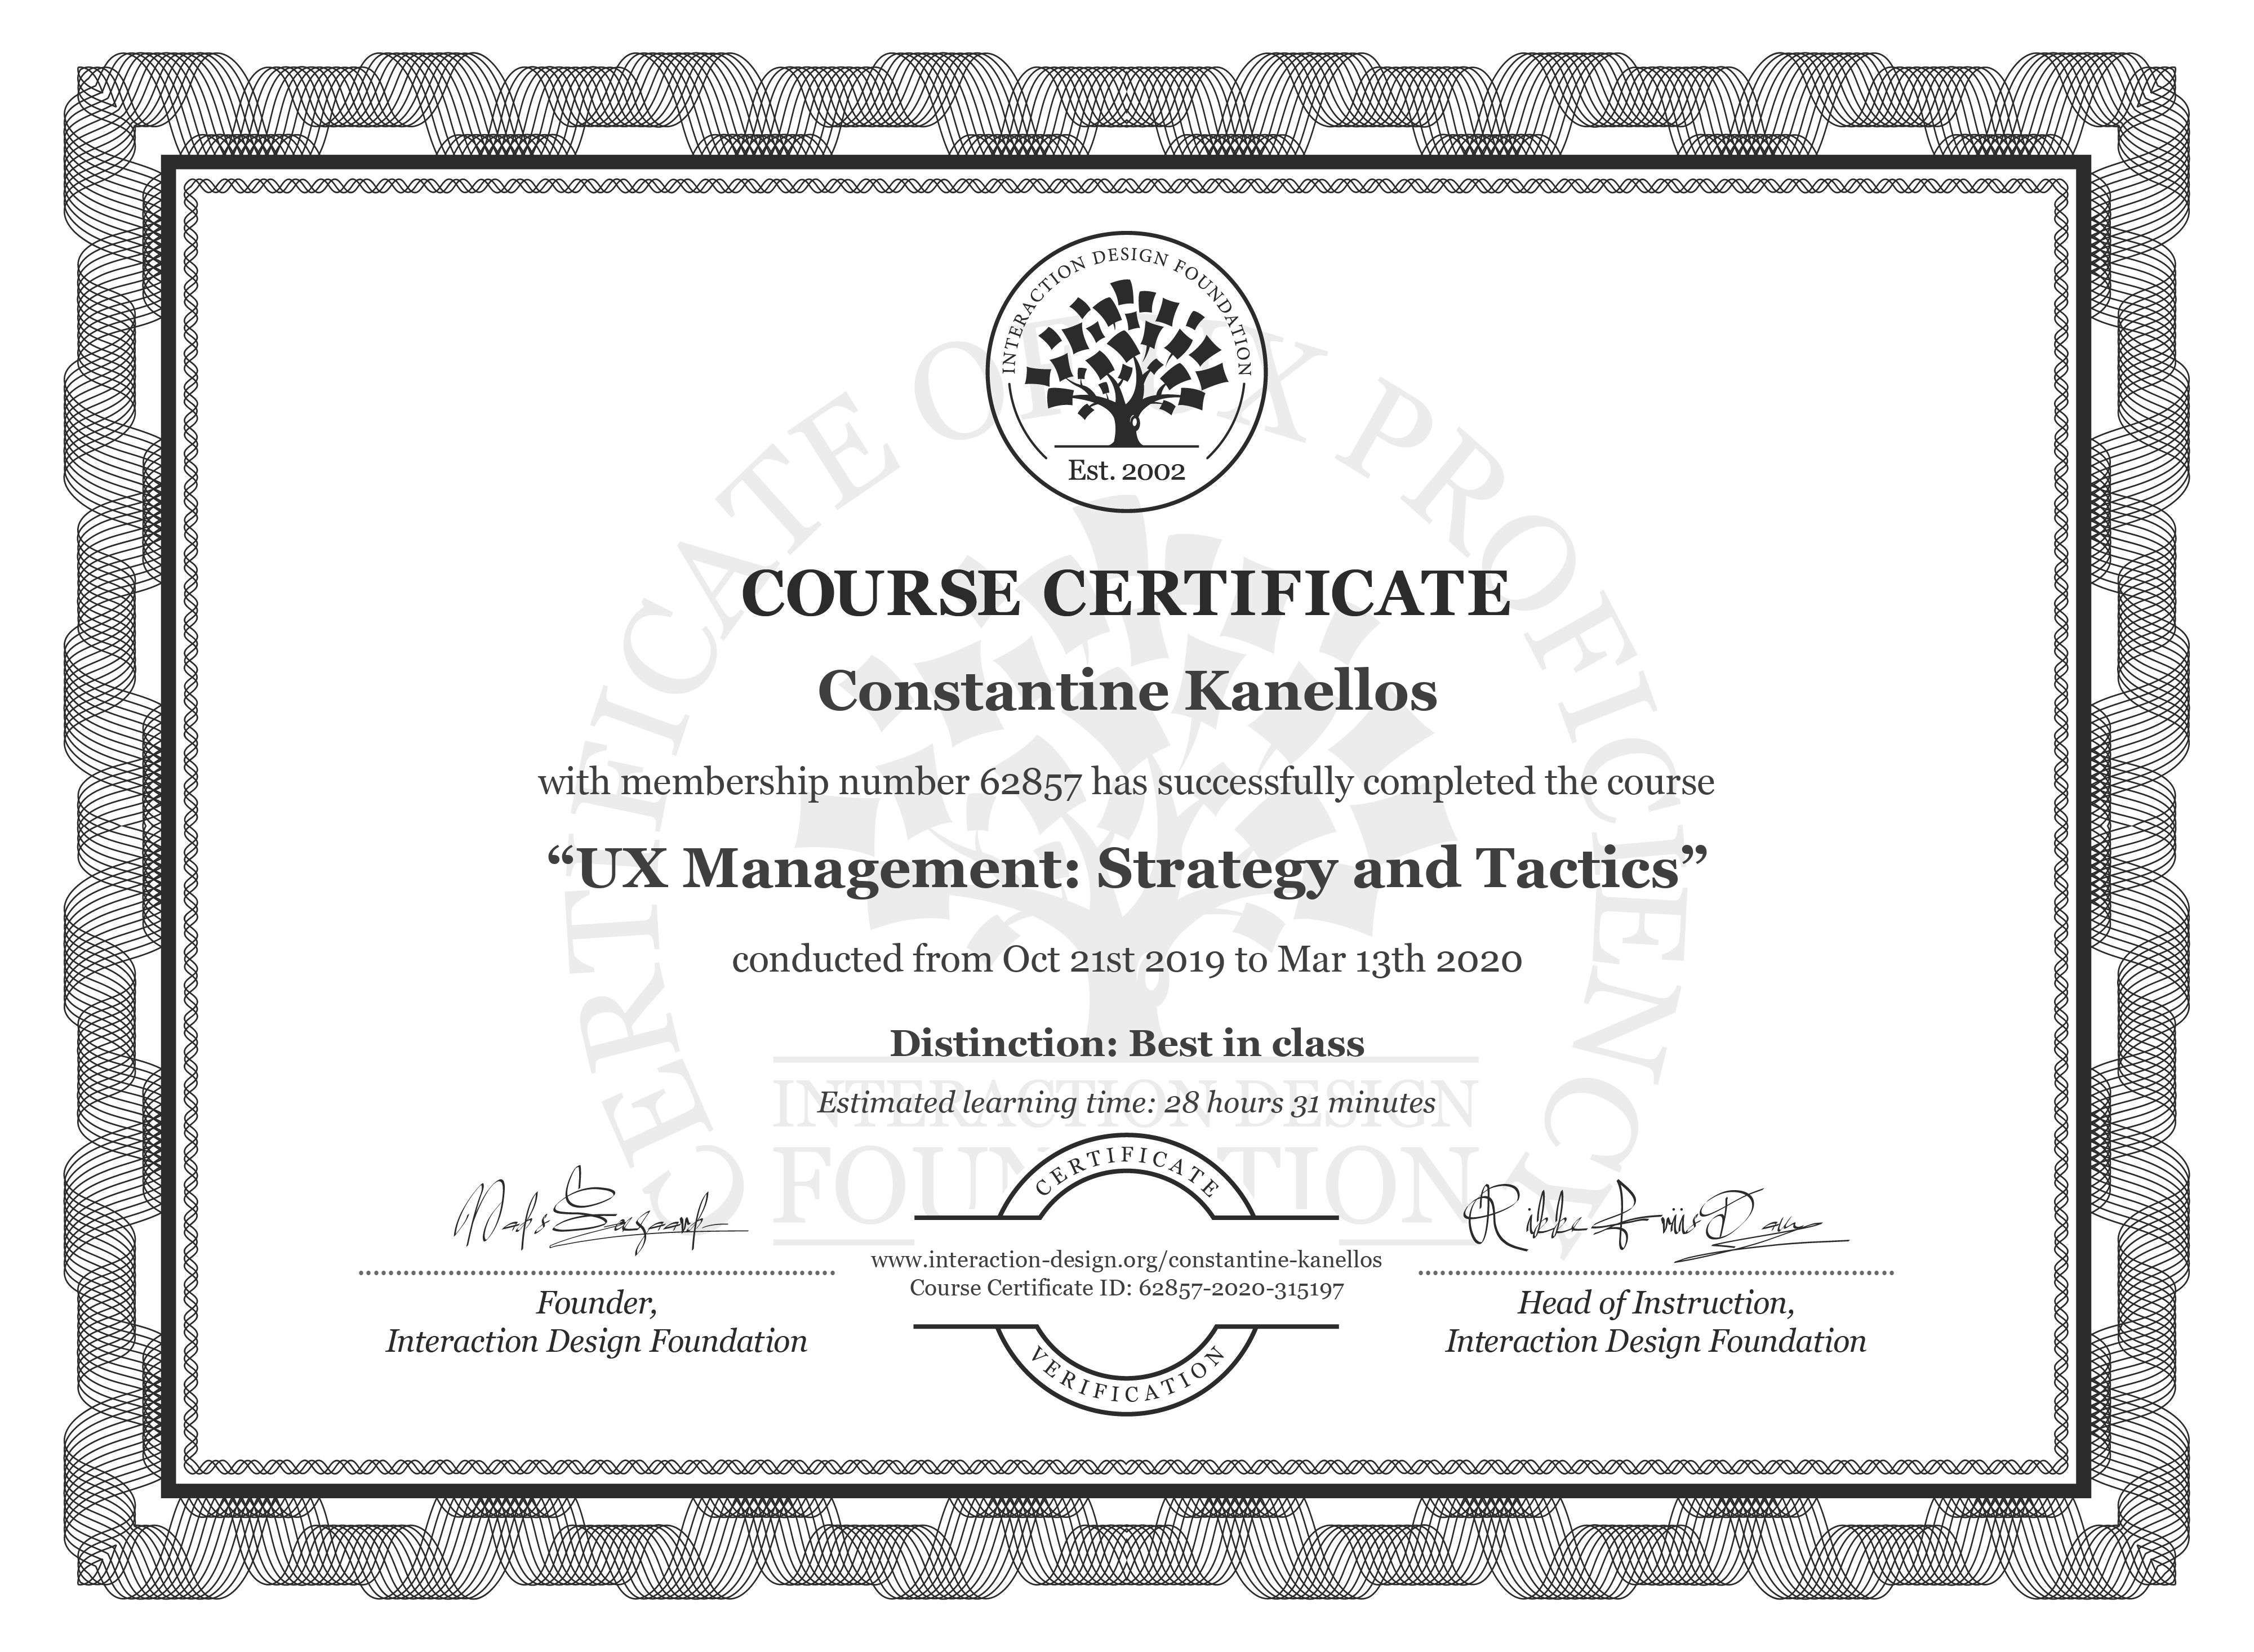 Constantine Kanellos's Course Certificate: UX Management: Strategy and Tactics